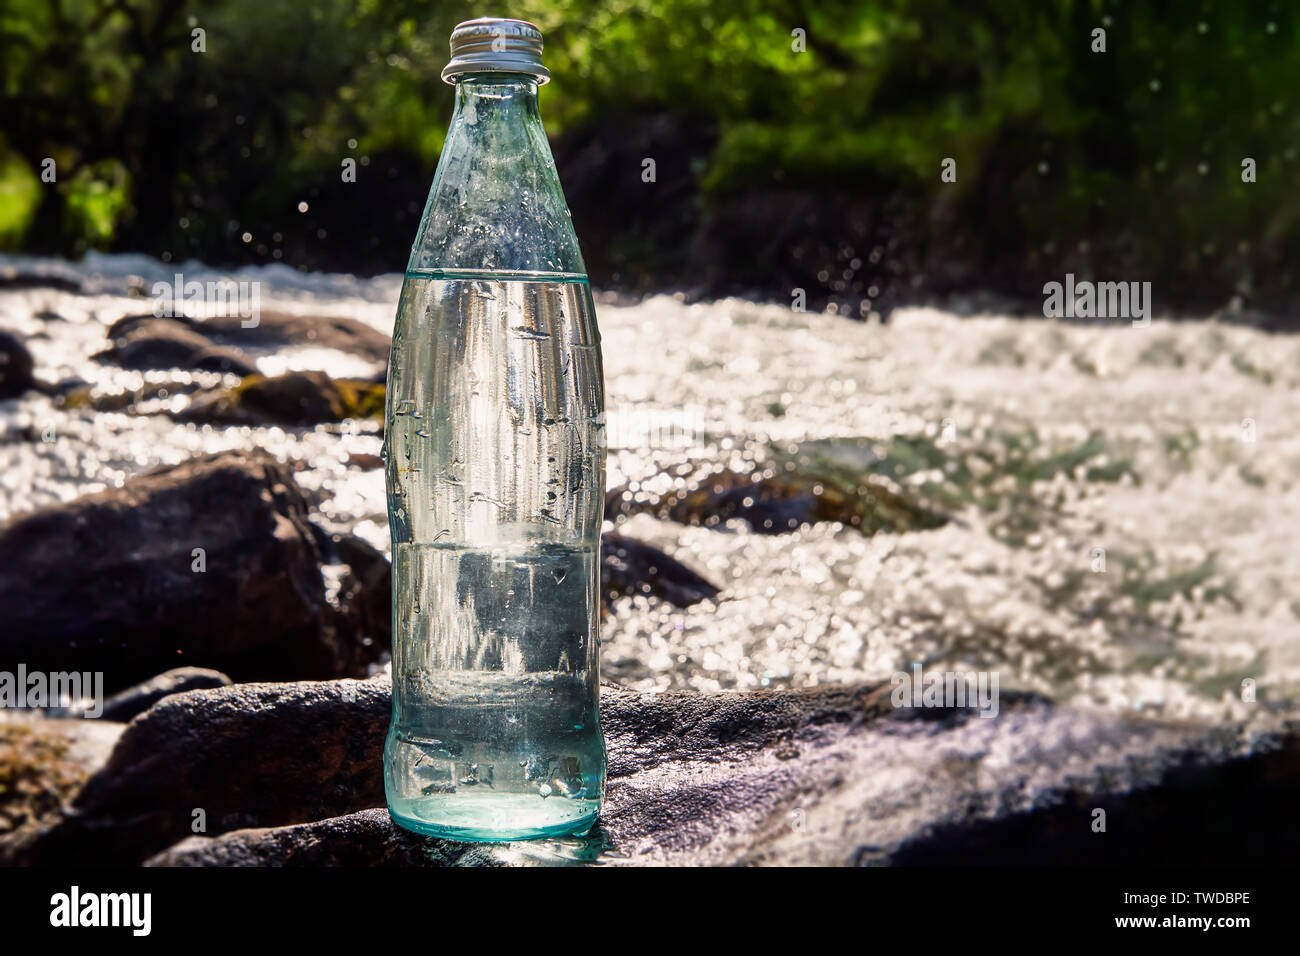 A bottle of fresh, cool water against the backdrop of nature, a mountain river with the purest water. Stock Photo